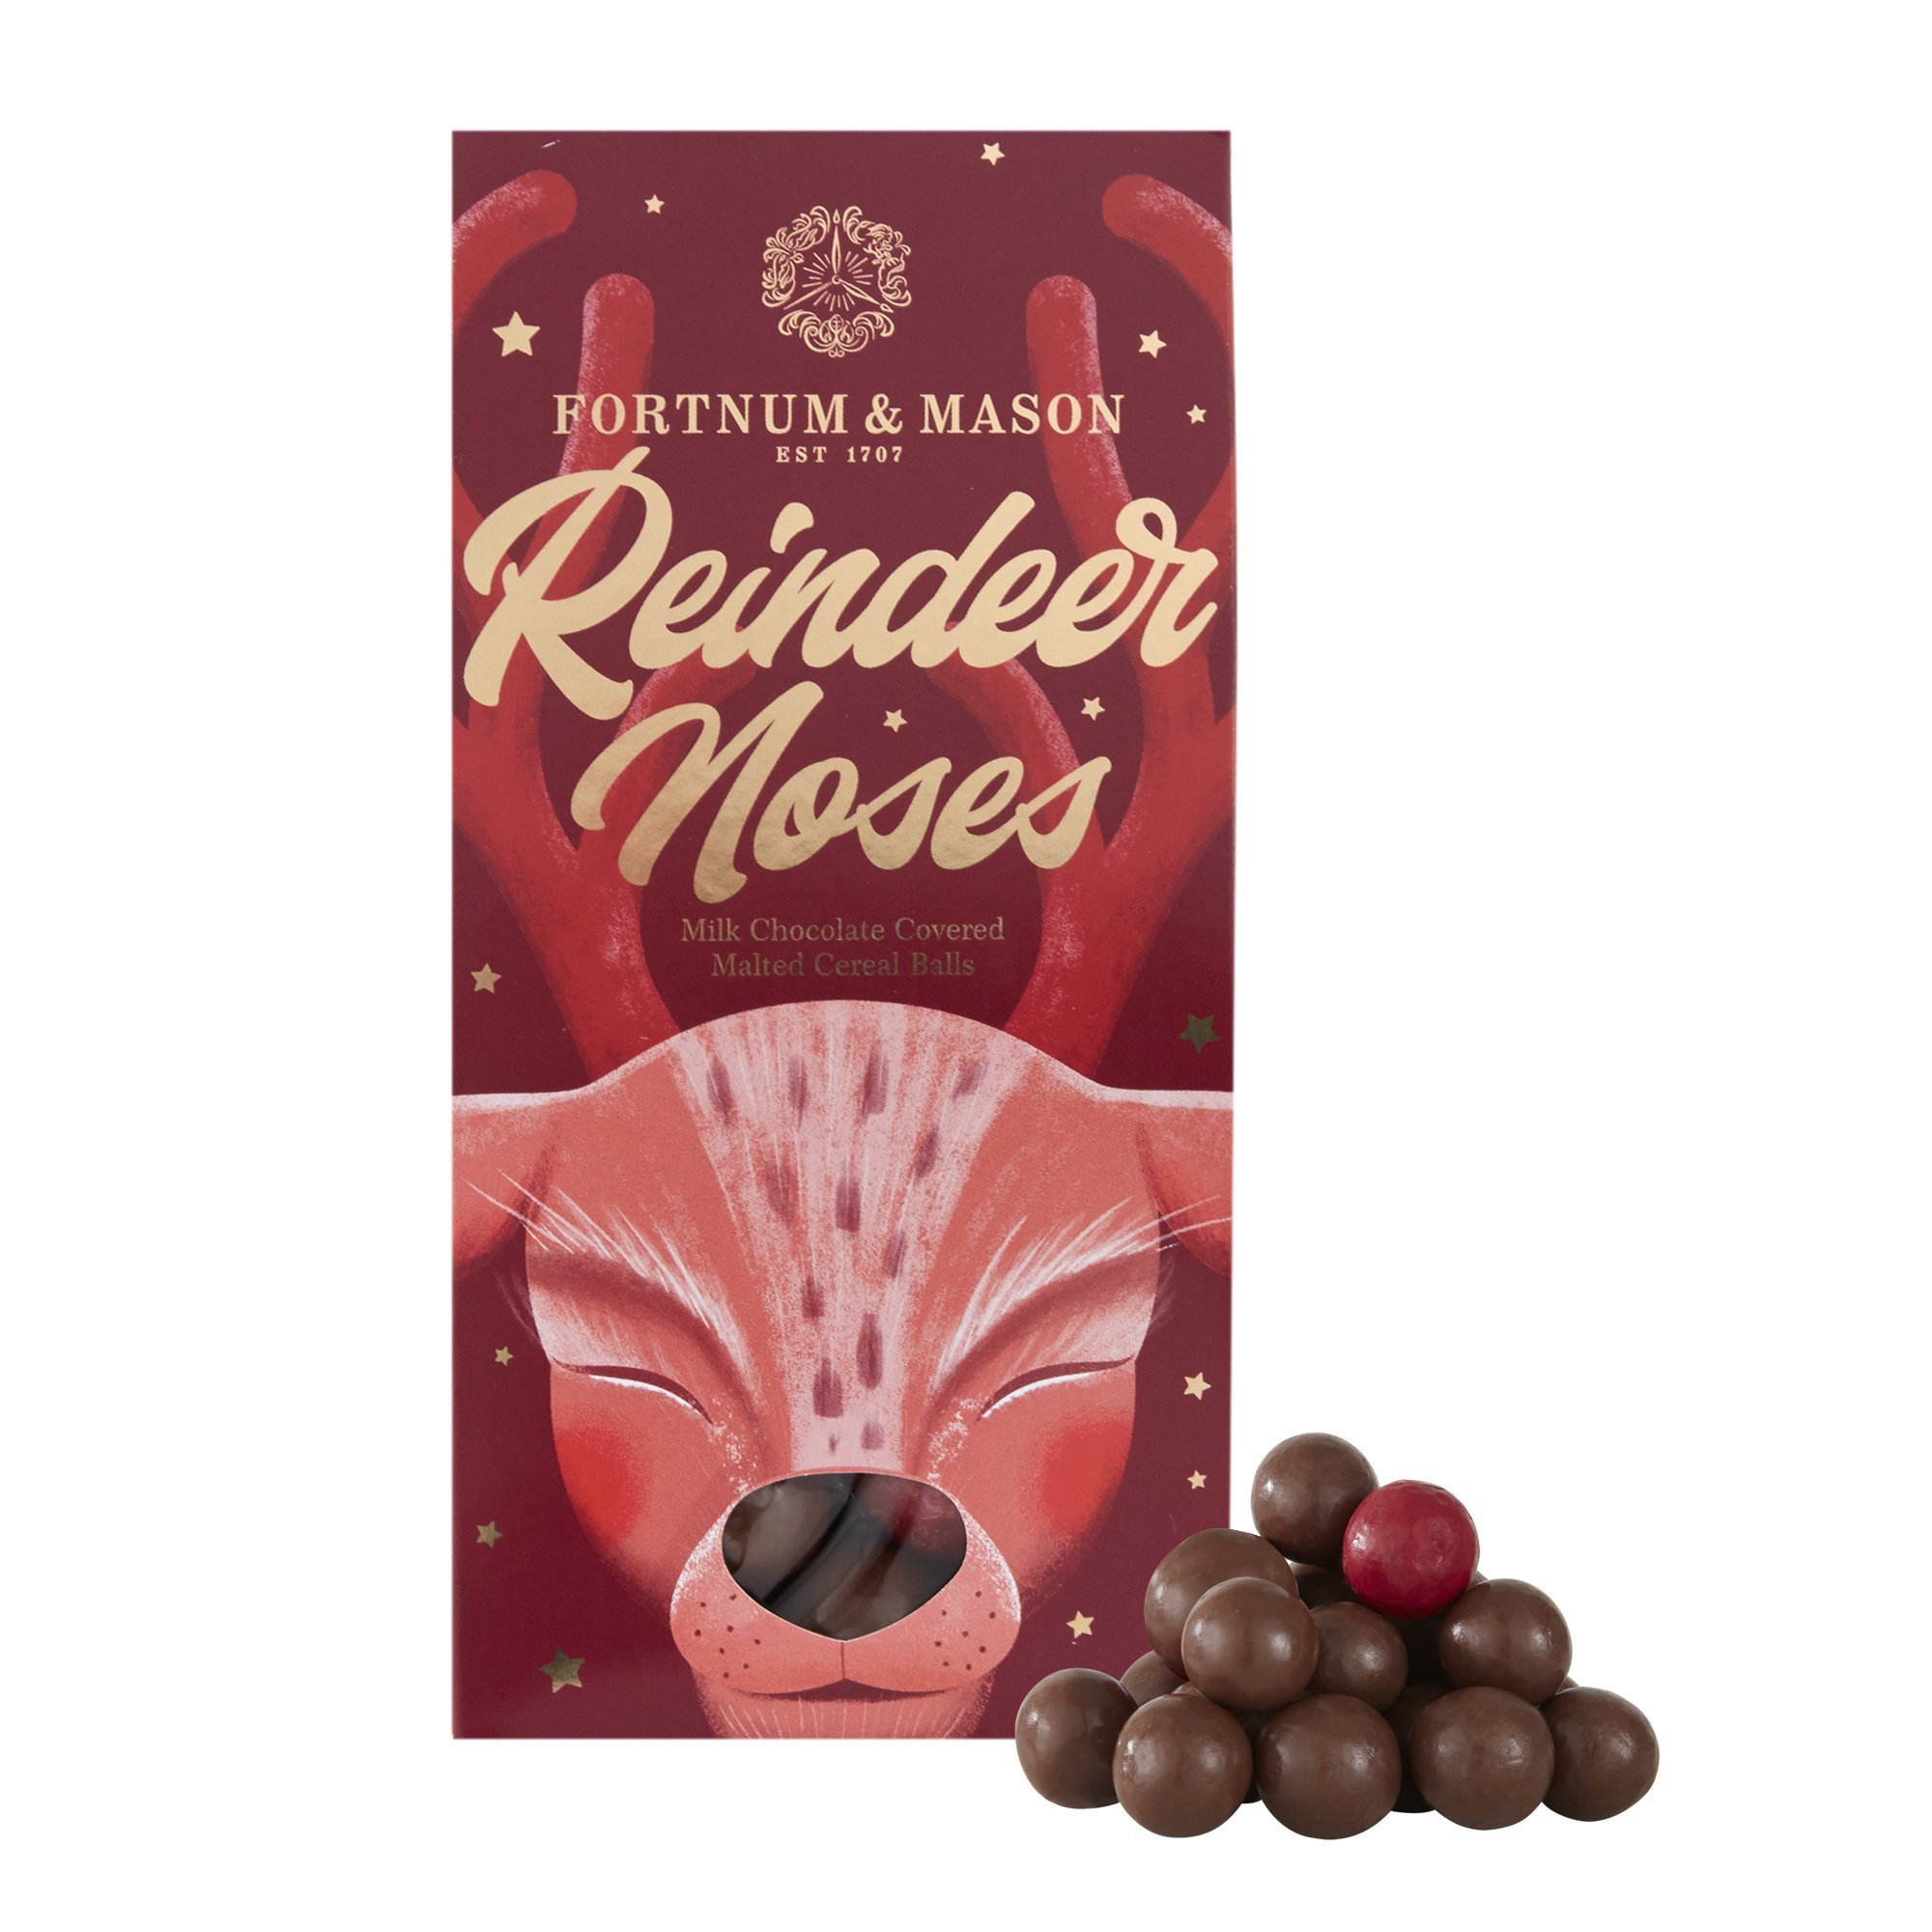 Christmas Reindeer Noses 150g £8.95